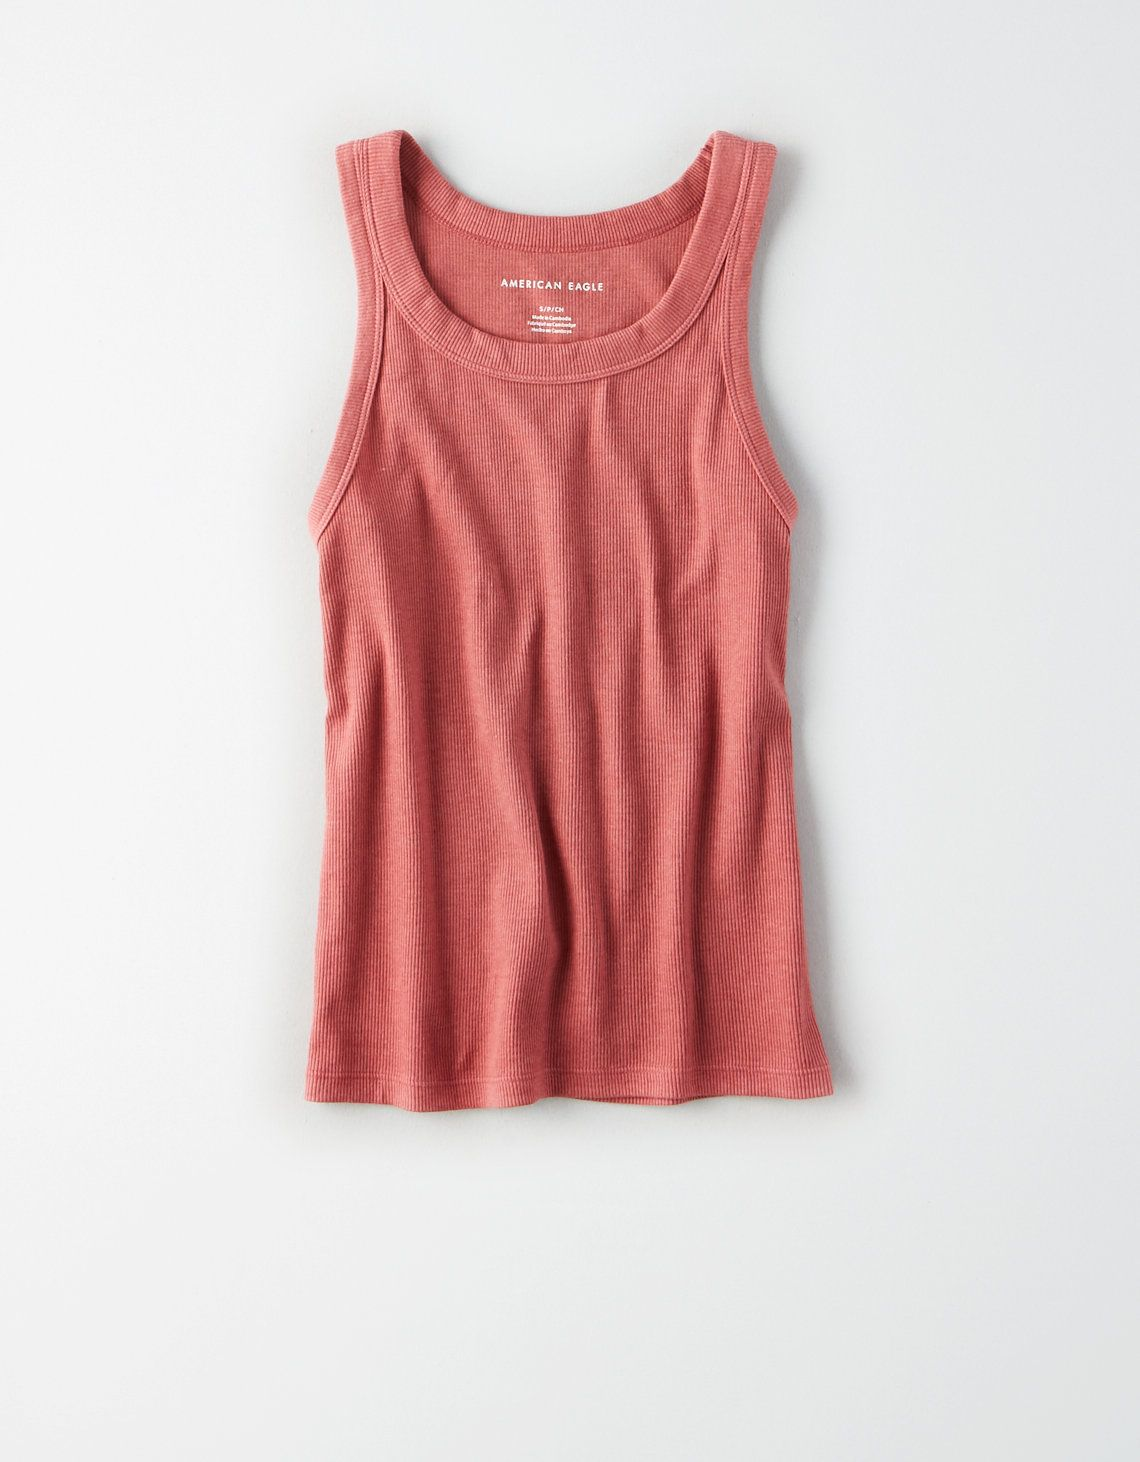 c3fa1a74fd3c4a AE High Neck Tank Top